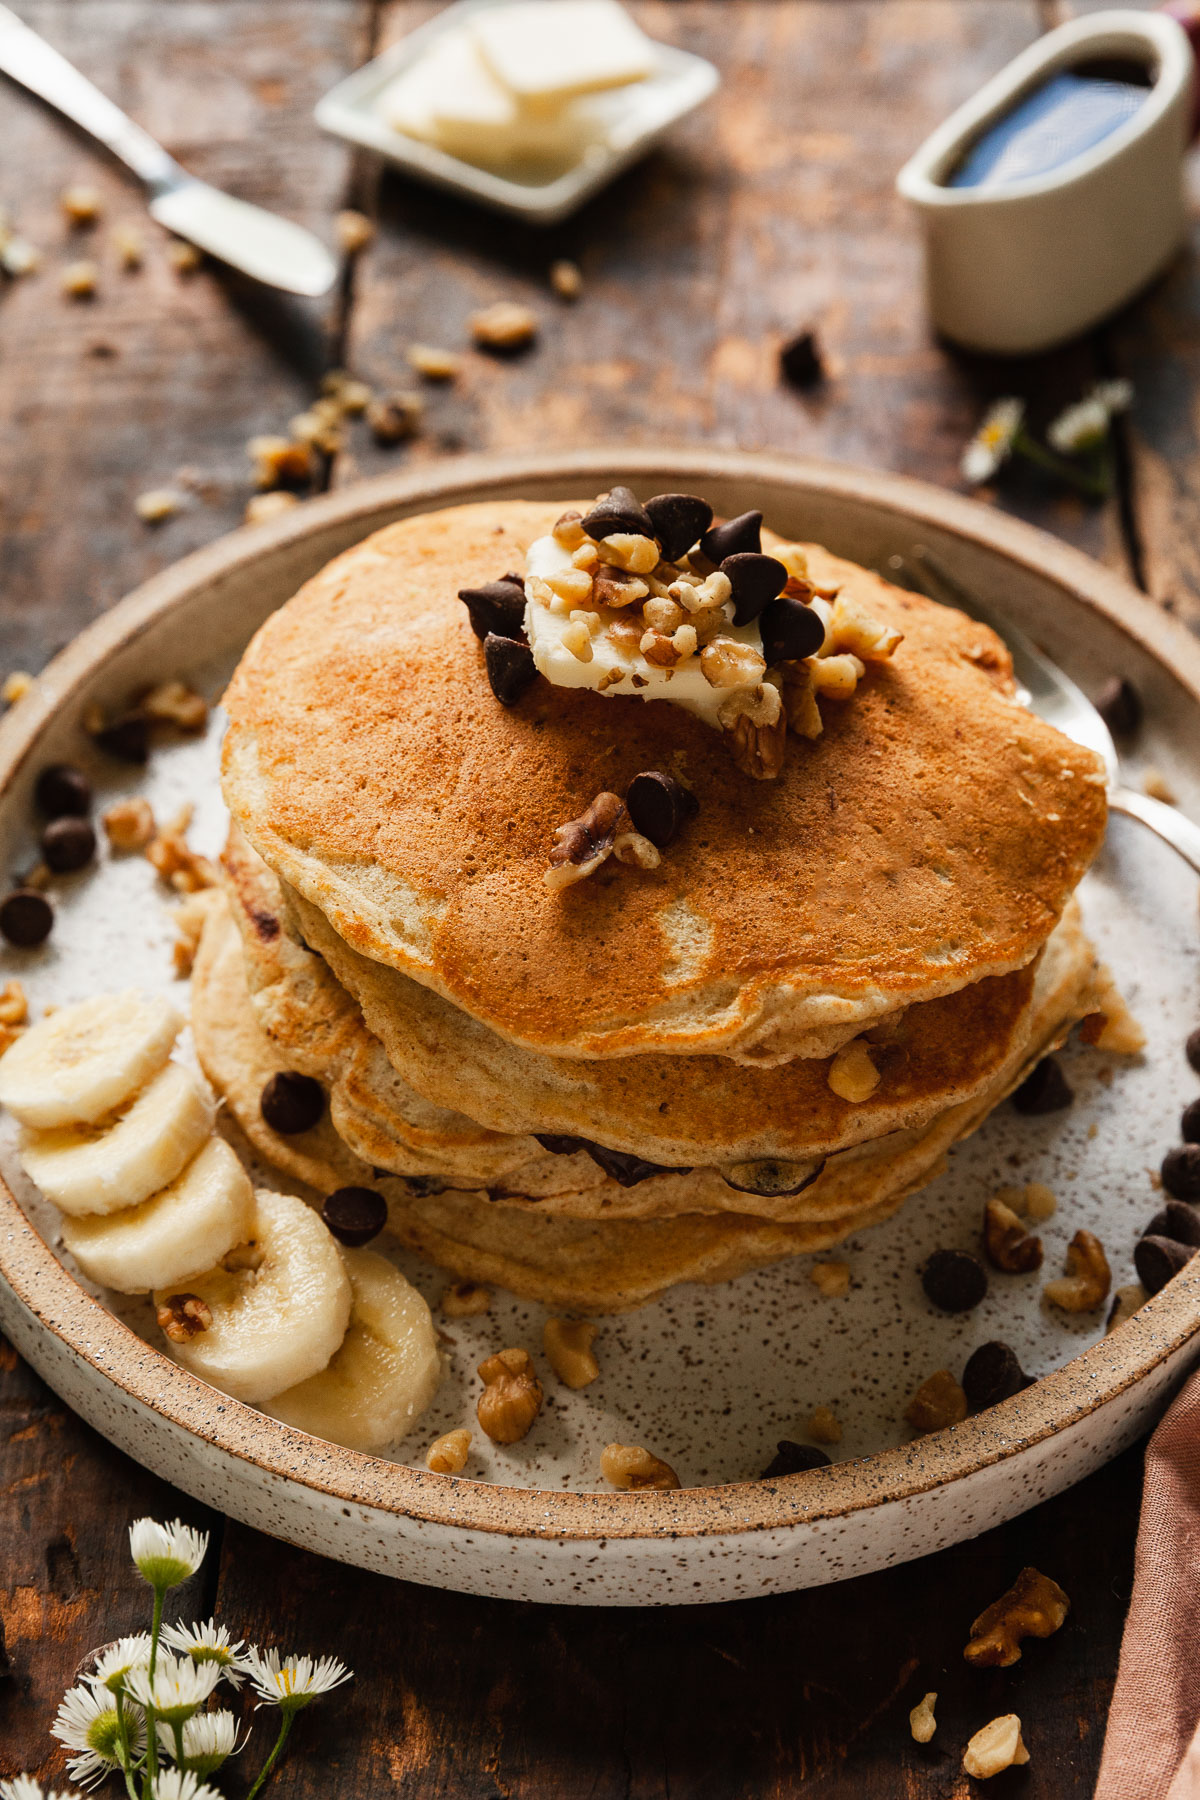 image of plate with pancakes topped with walnuts, chocolate chips and bananas